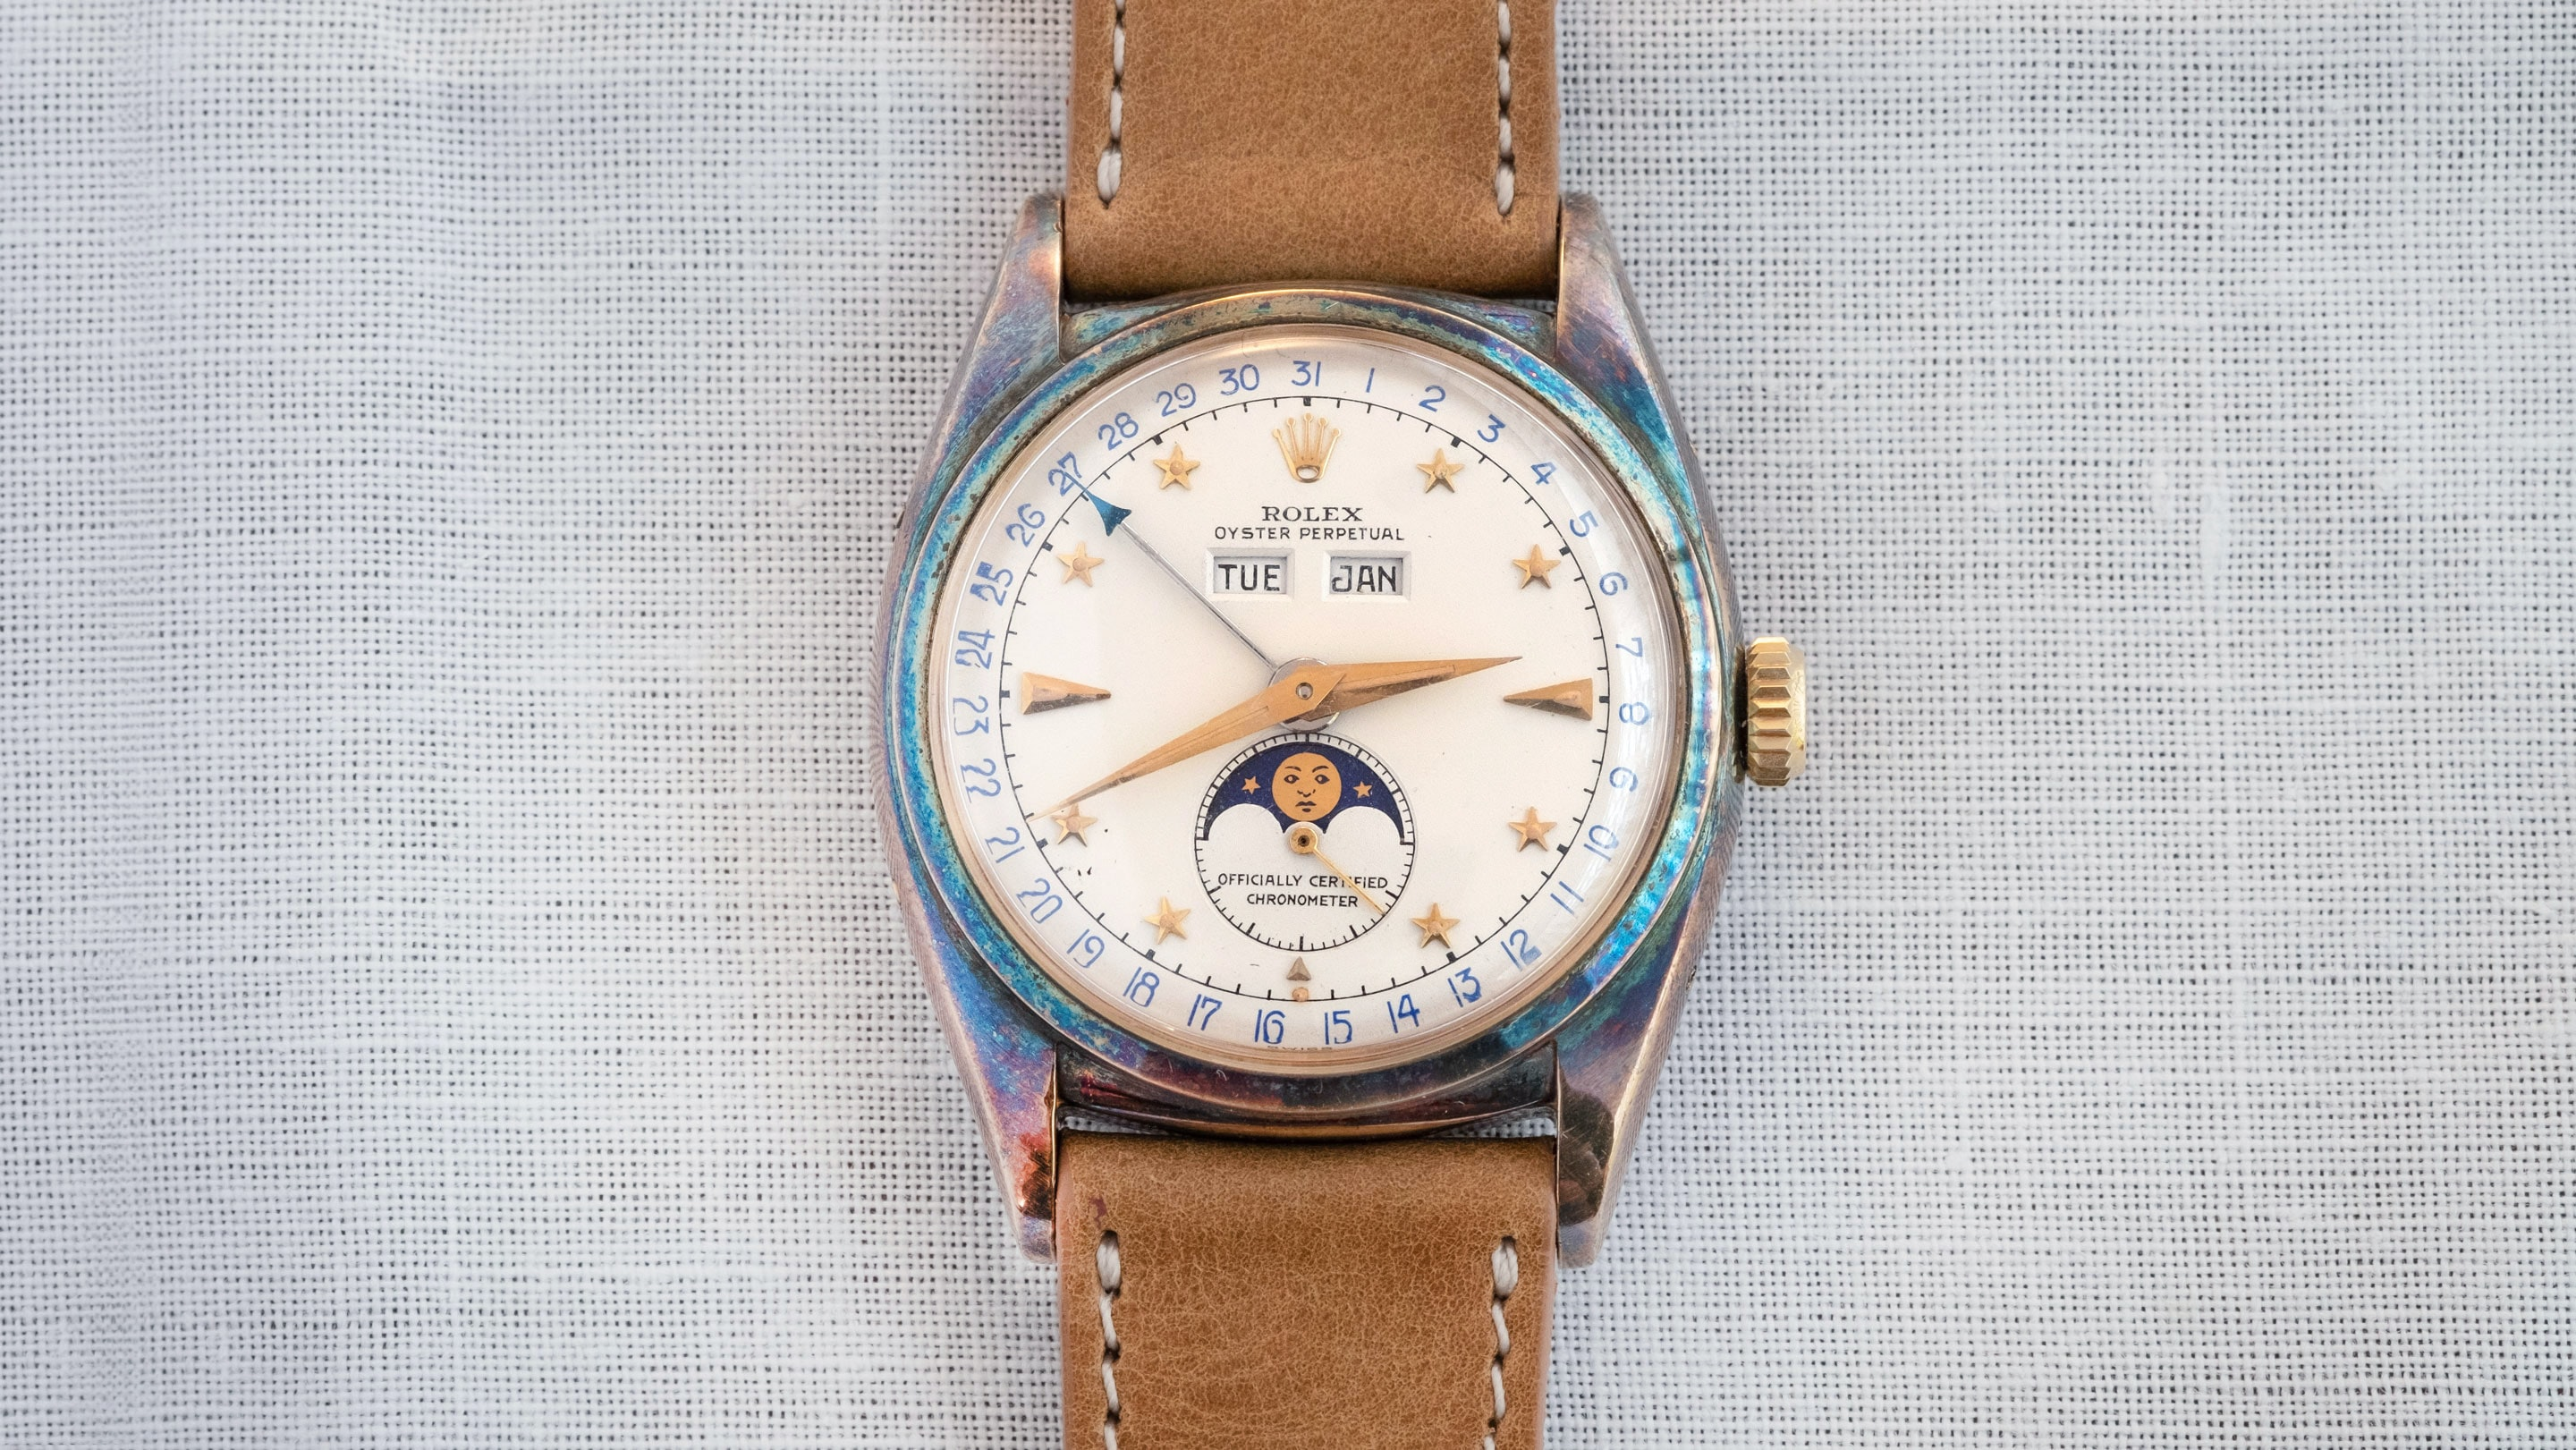 Auction Report: The Rolex Ref. 6062 'Dark Star' Is The Coolest Watch Of This Week's New York Auctions